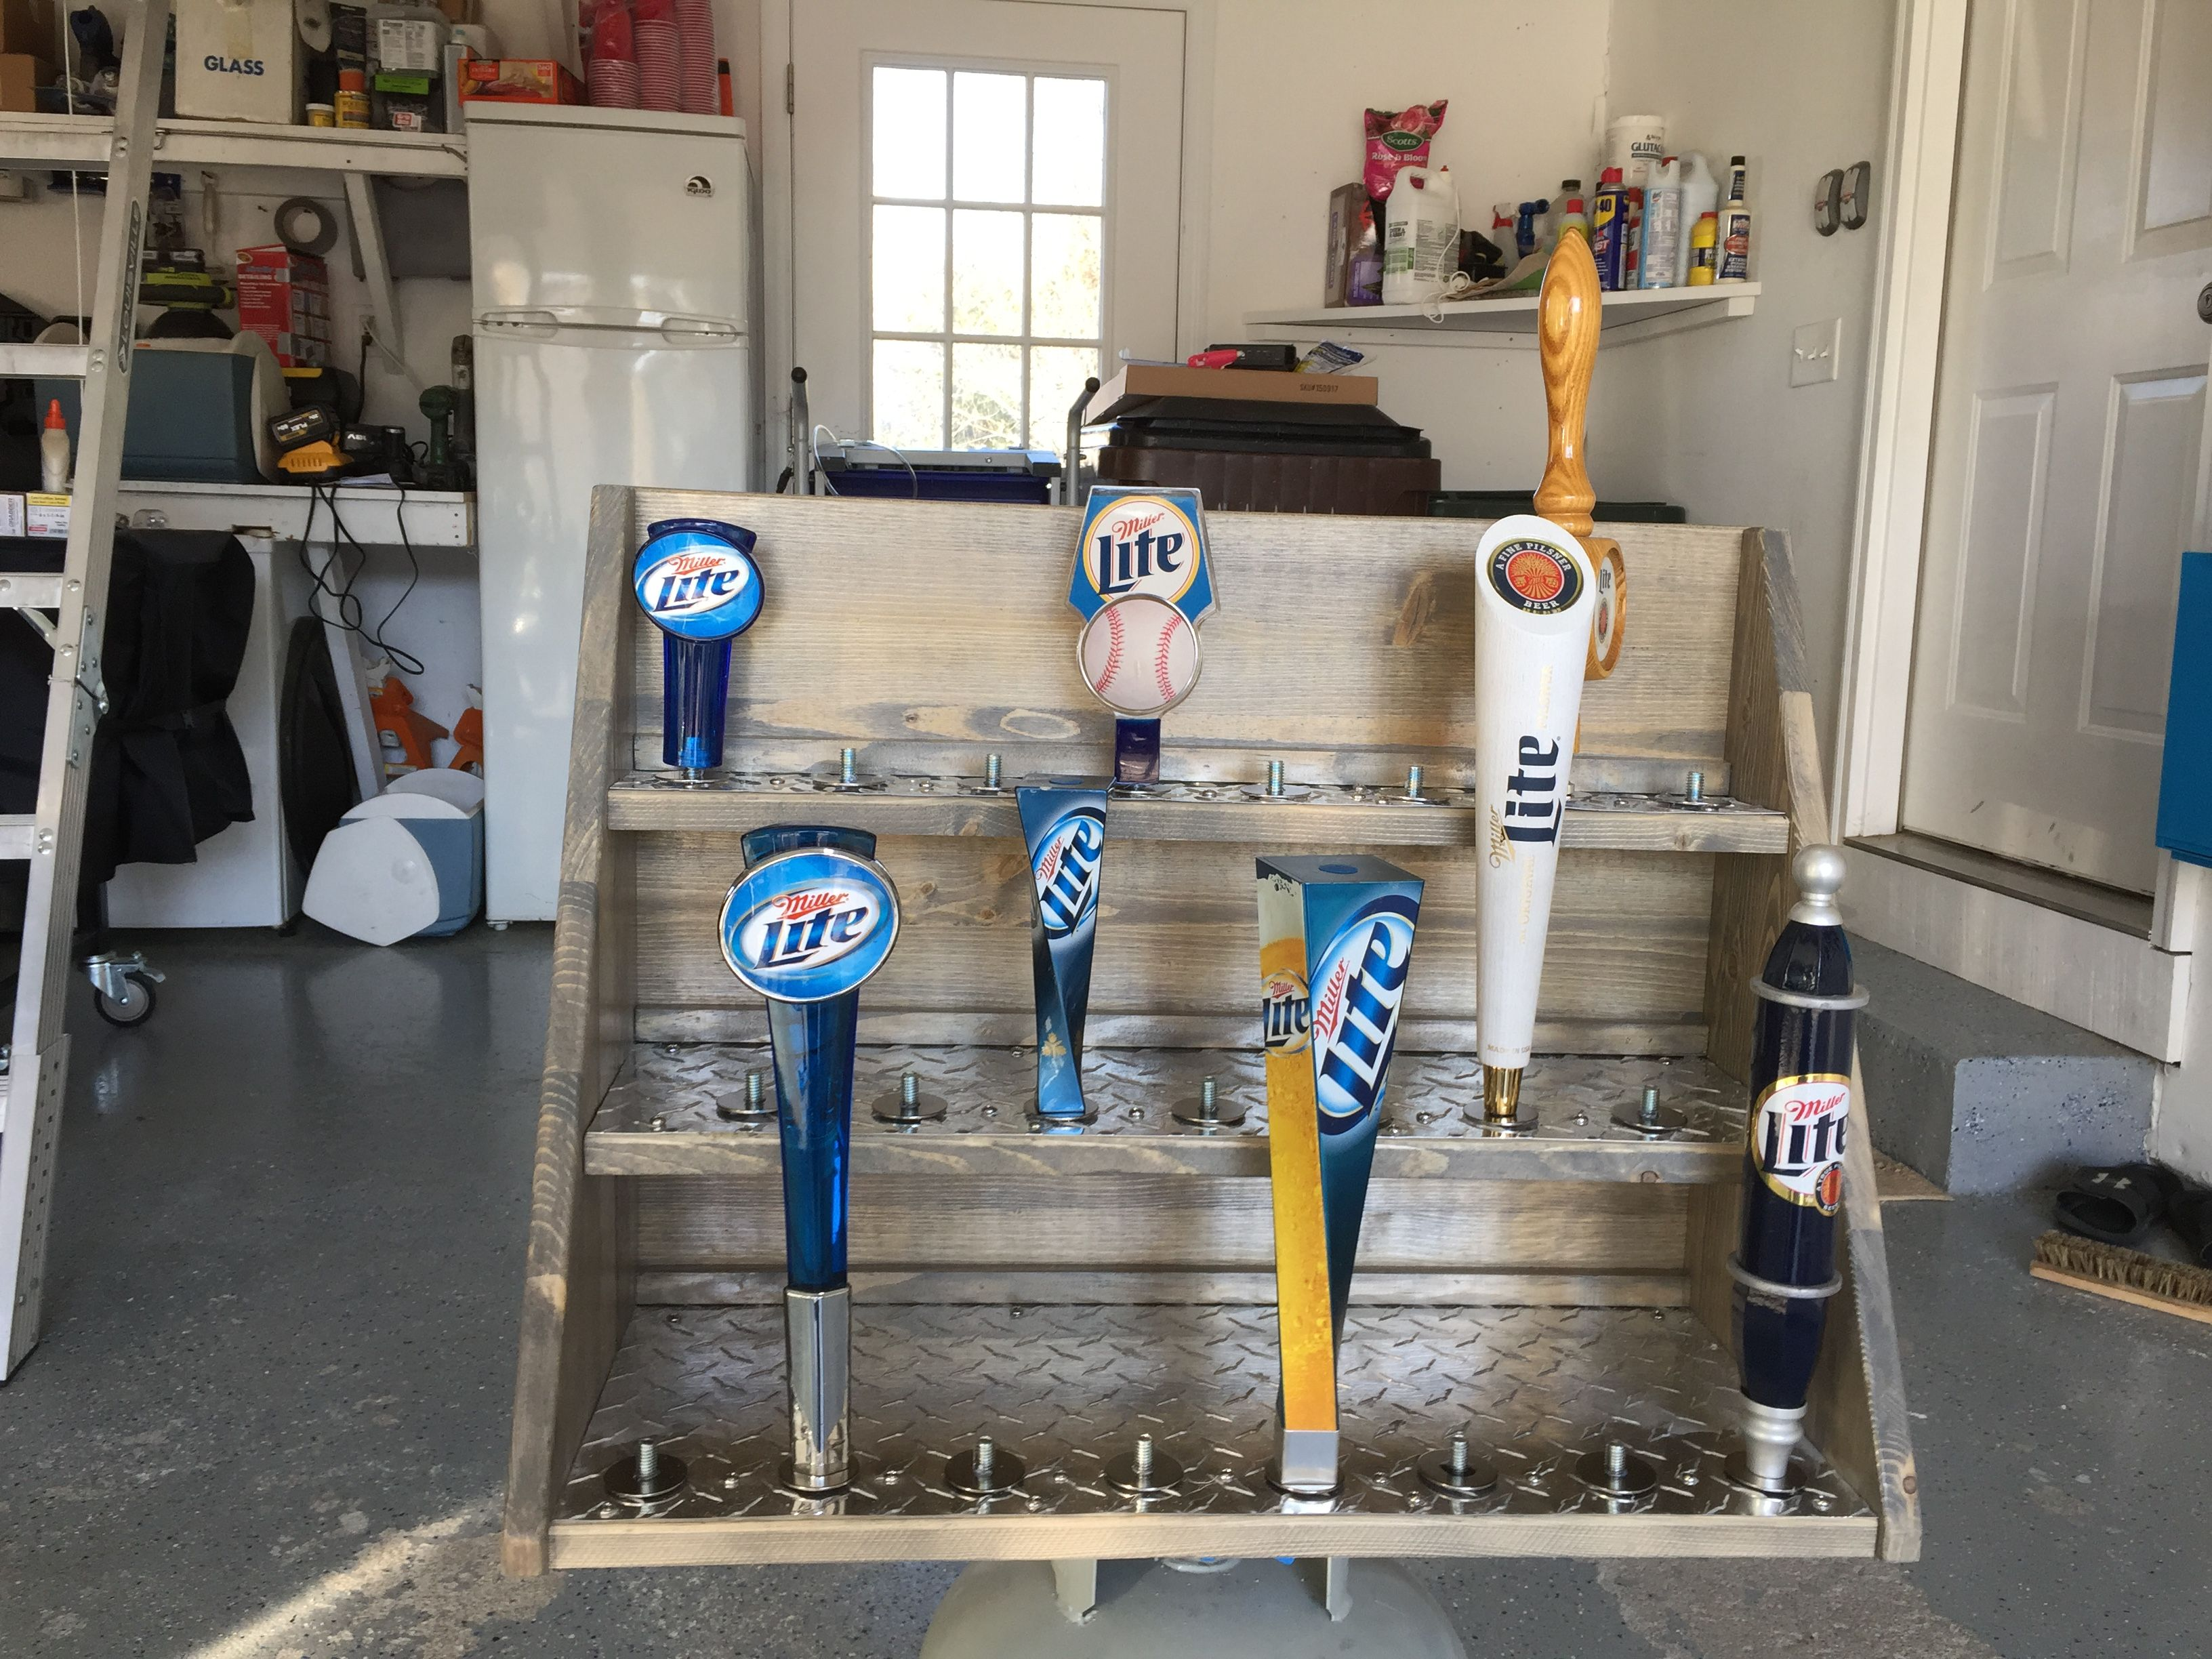 Diy Beer Tap Handle Display Diy Projects Pinterest Beer Taps